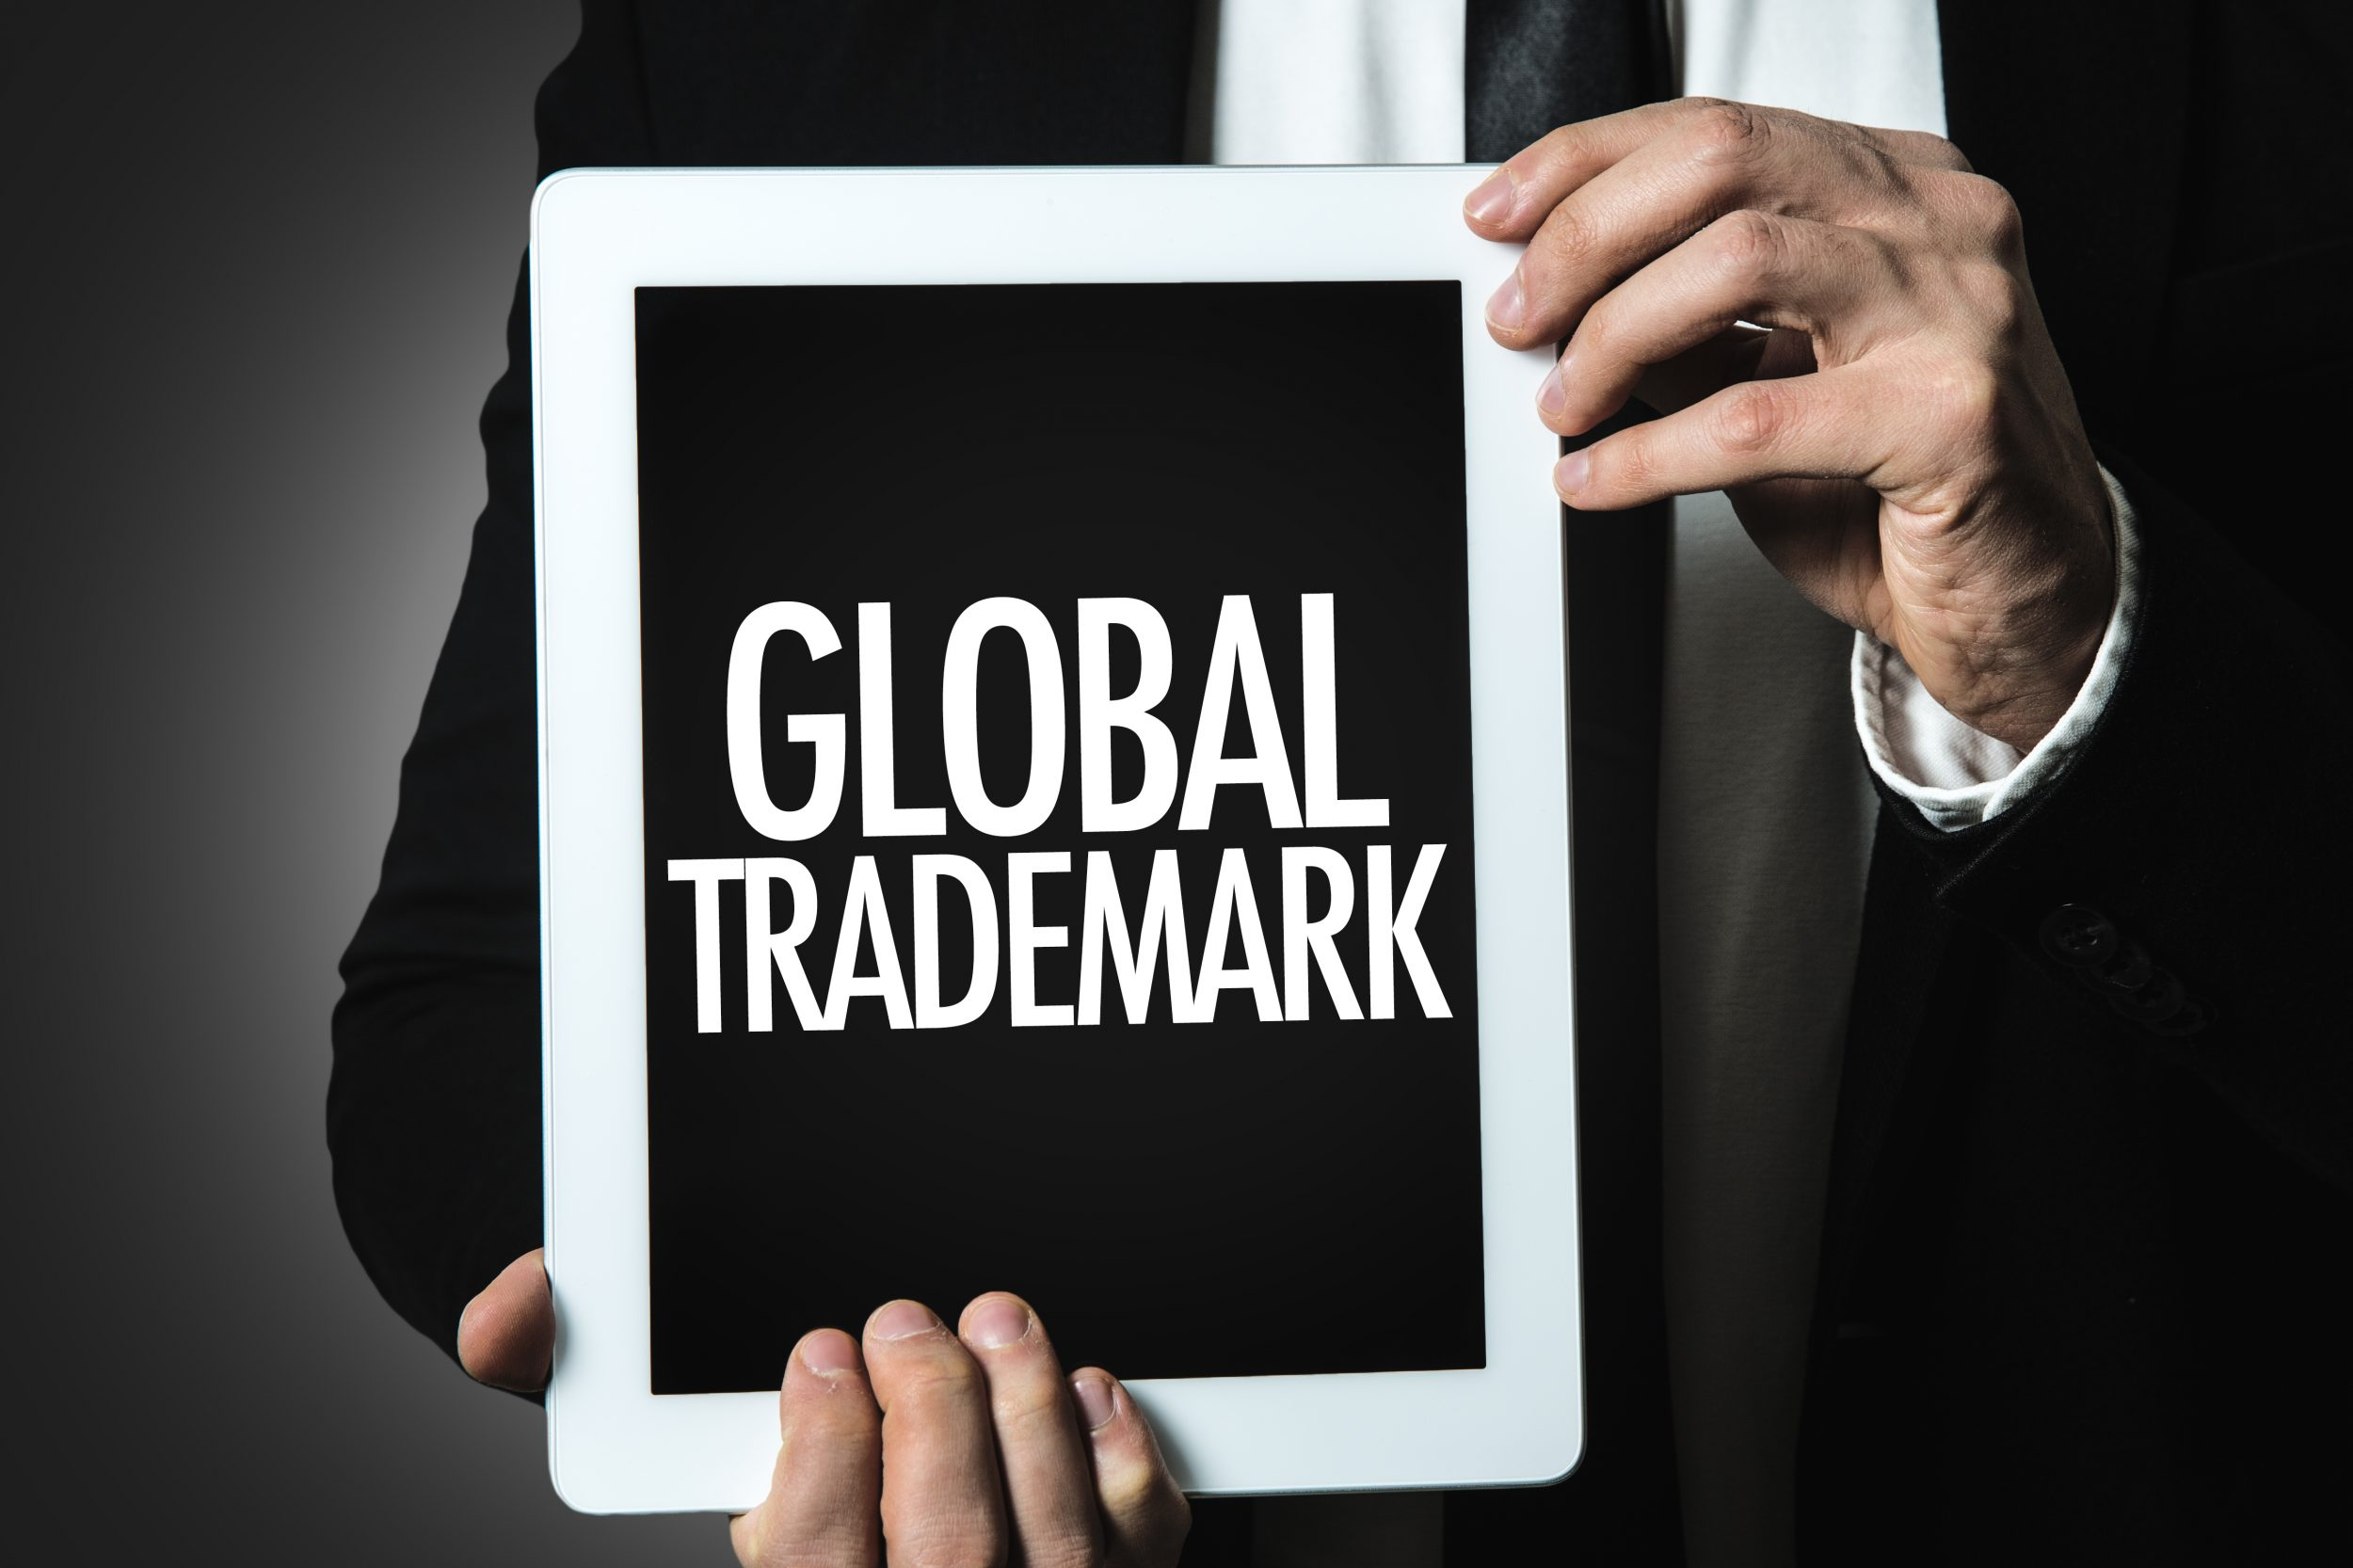 International Trademark Rights - What Do I Need to Know About the Law? - Gerben Law Firm